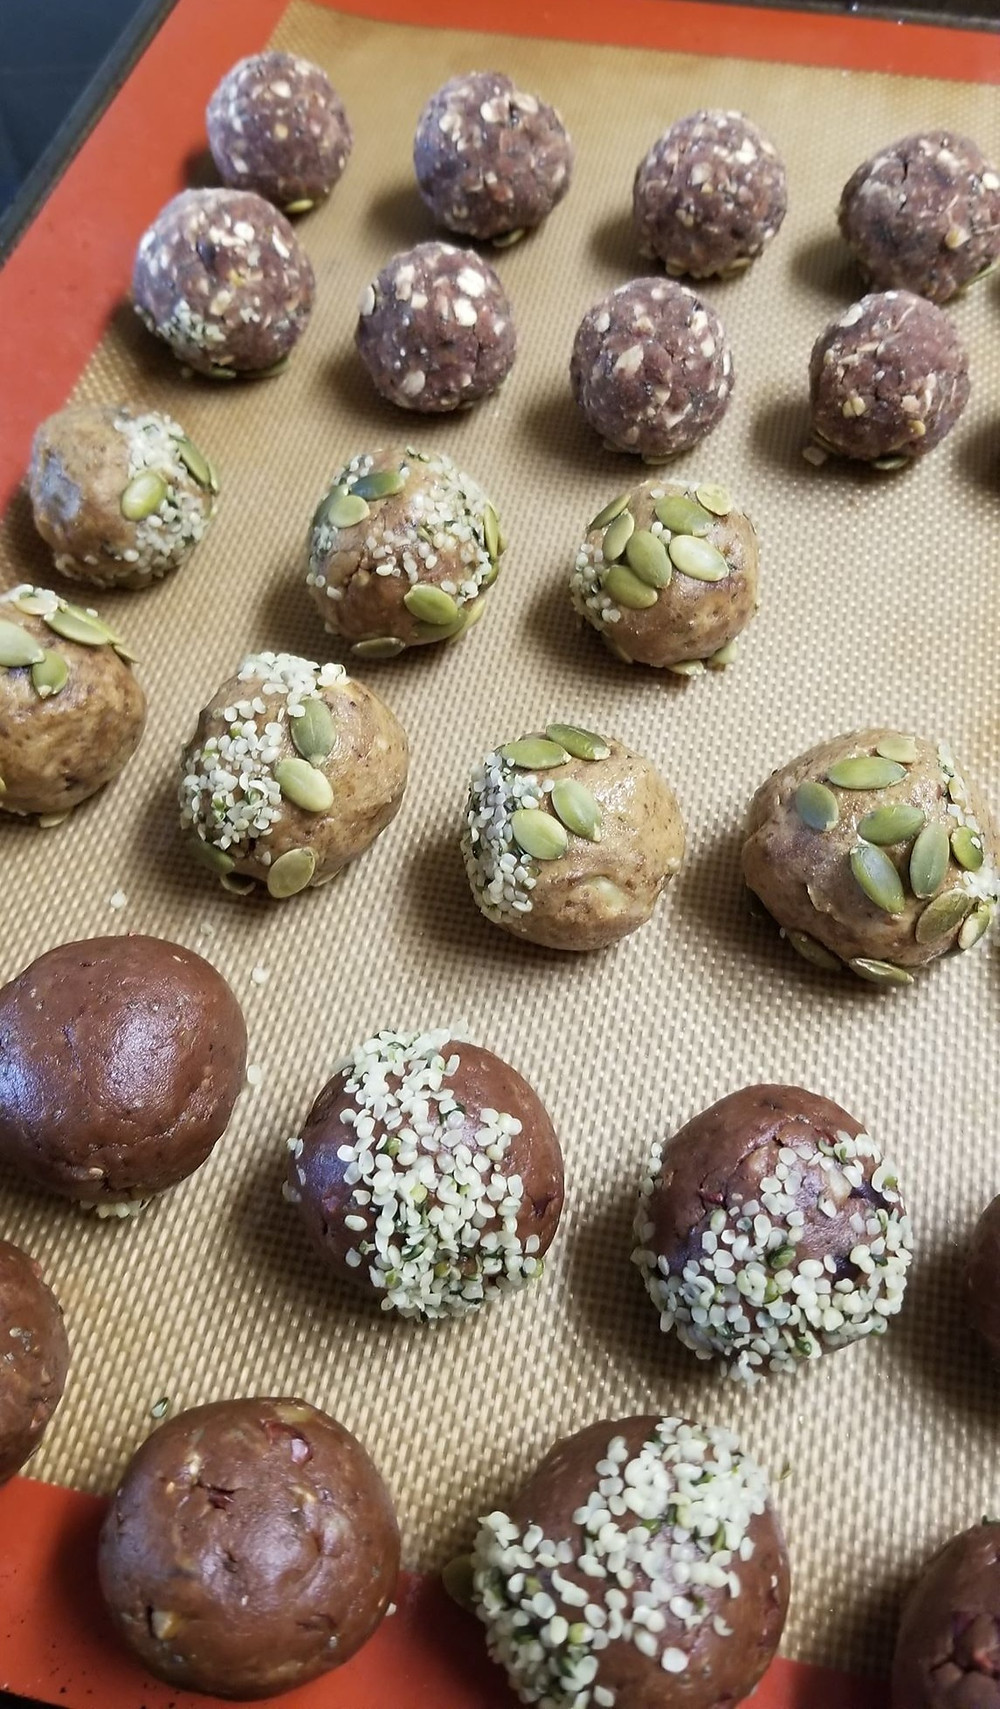 Baking tray with rows of bliss balls